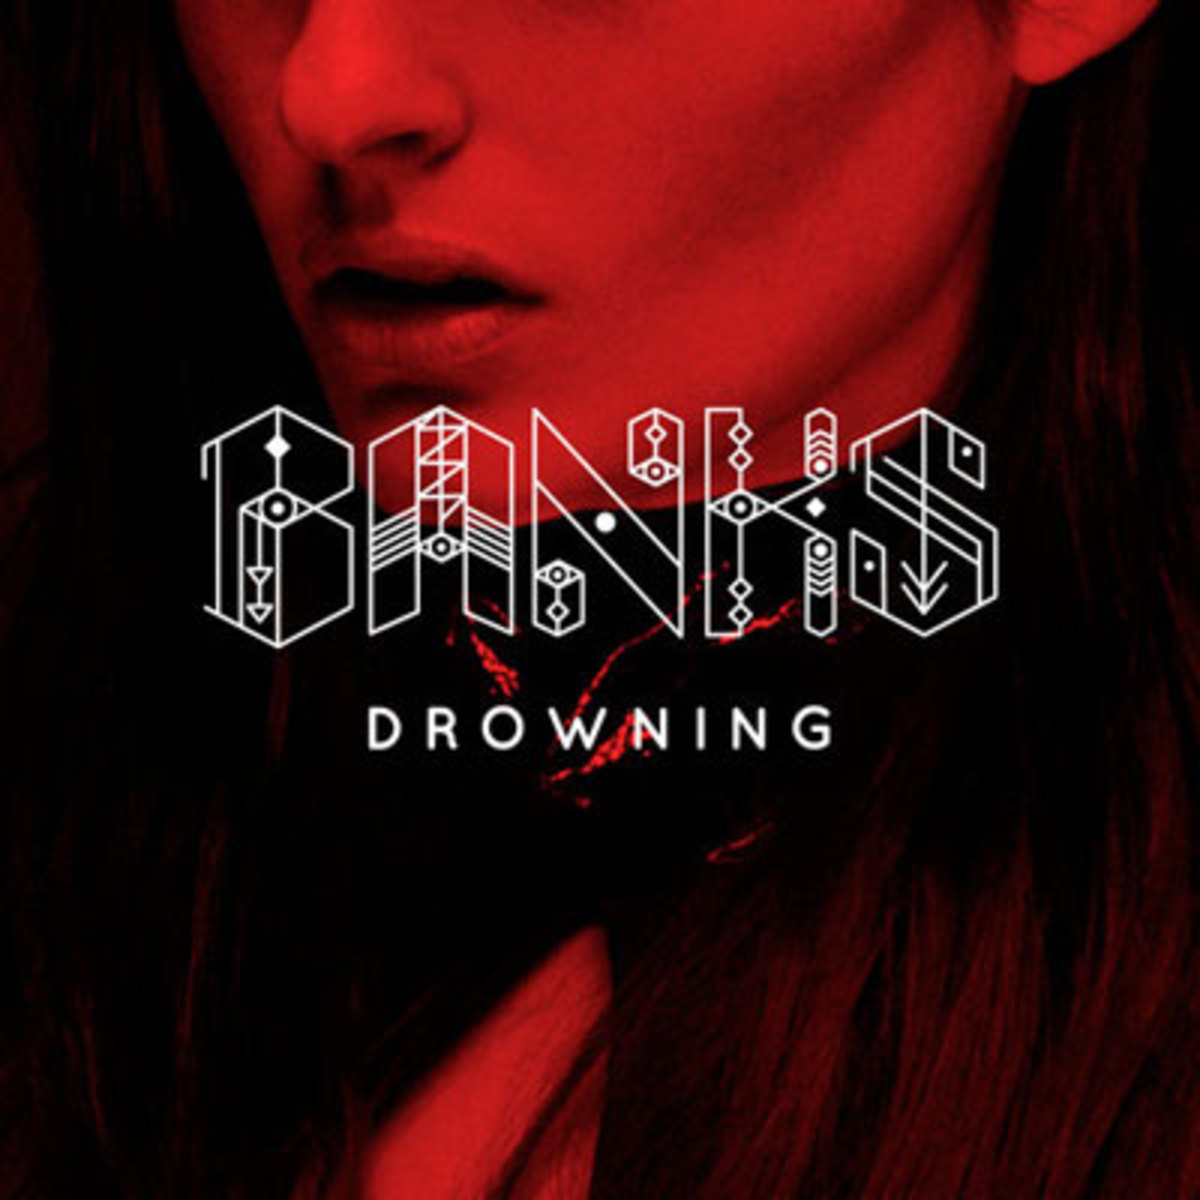 banks-drowning.jpg